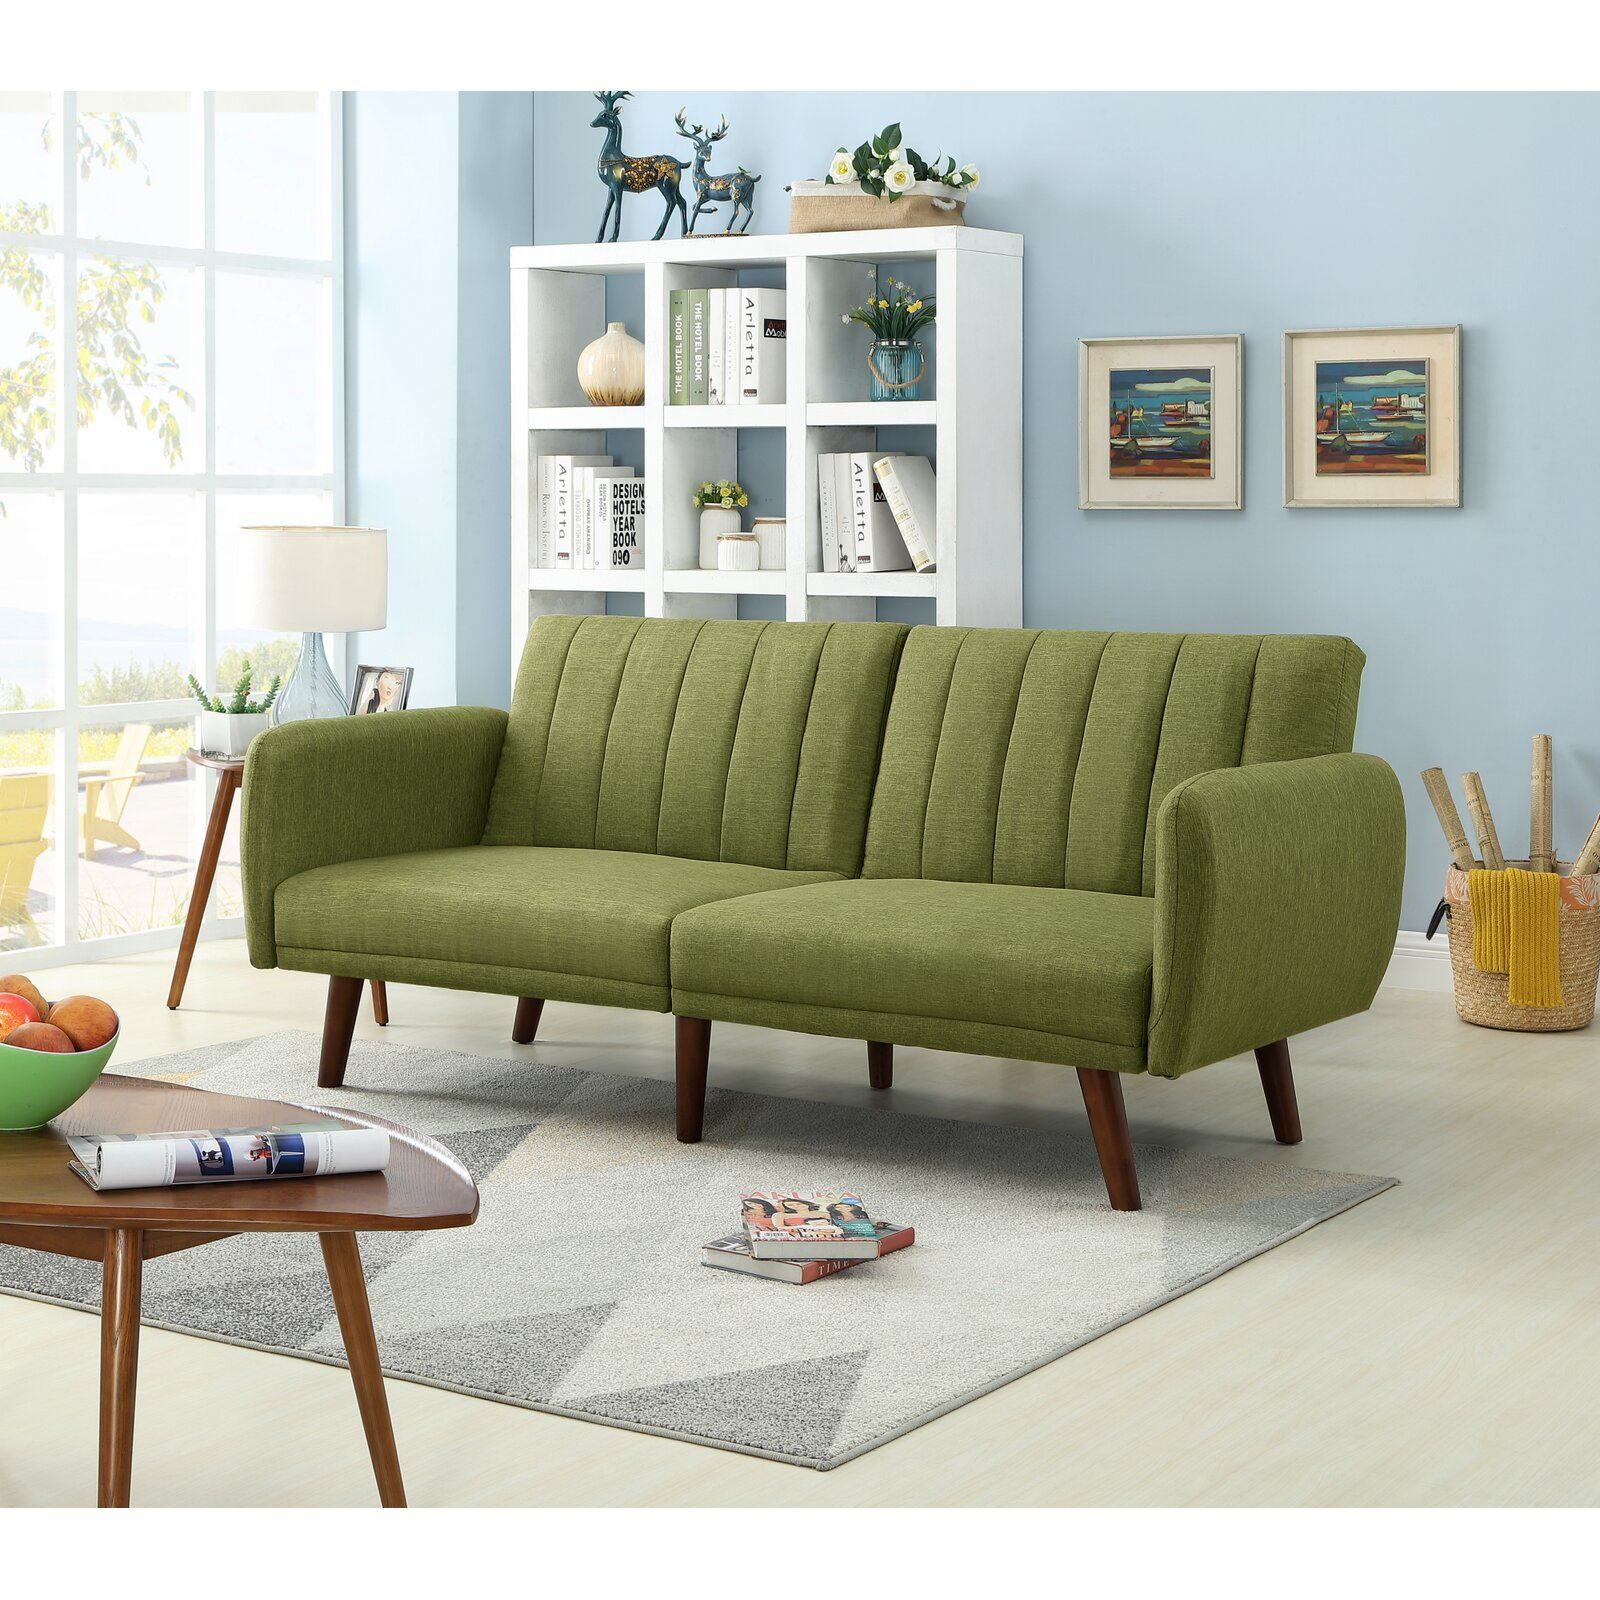 Fynn 42 Round Arm Upholstered Sofa Bed Sofa Bed Green Furniture